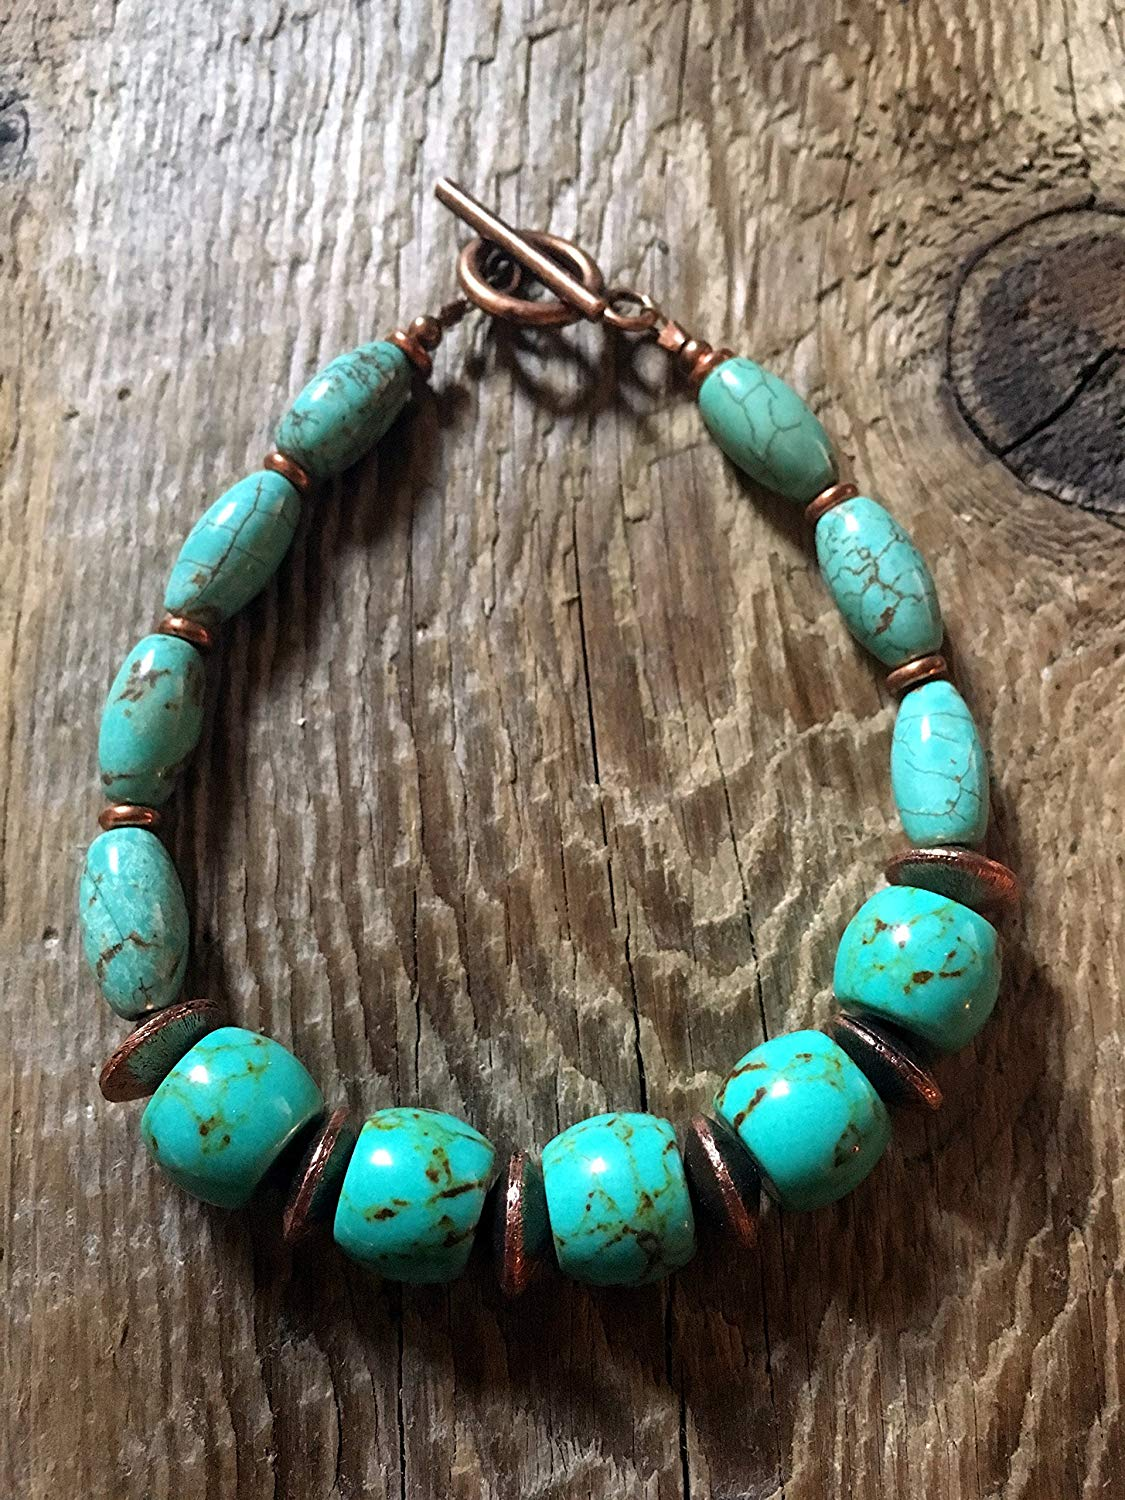 Turquoise Bracelet - Large Barrel Turqoiuse Beads and Copper Brushed Copper Saucer Spacers with a Matte Copper Simple Toggle